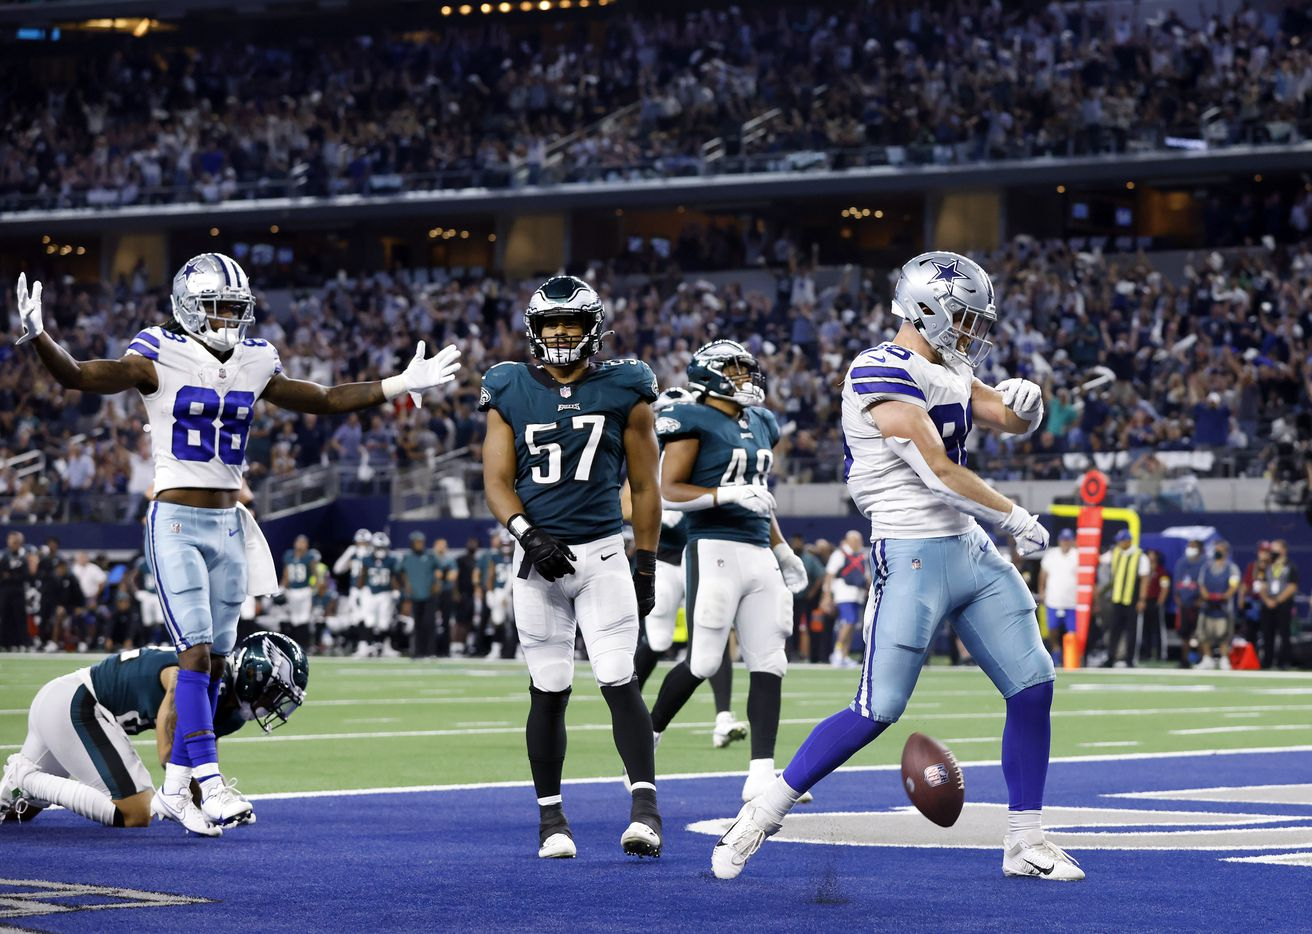 Dallas Cowboys tight end Dalton Schultz (86) spikes the ball in the end zone after scoring on a fourth quarter completion against the Philadelphia Eagles defense at AT&T Stadium in Arlington, Monday, September 27, 2021. (Tom Fox/The Dallas Morning News)